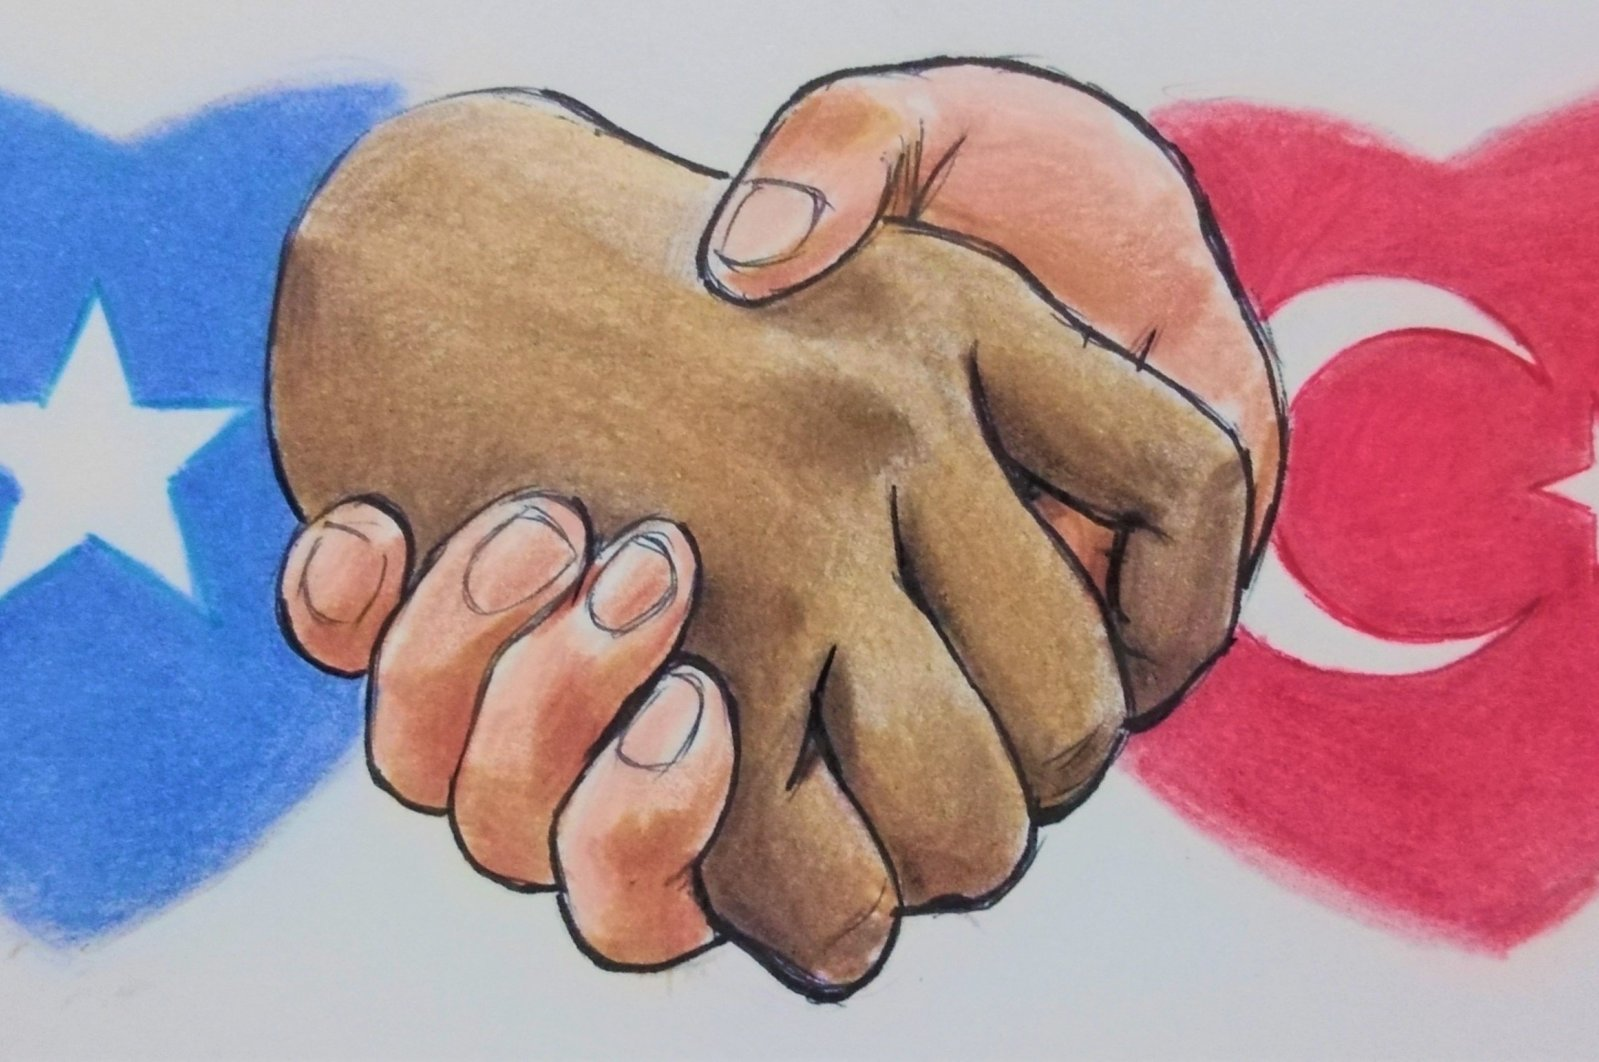 An illustration by Erhan Yalvaç shows two hands clasped in a handshake in front of the flags of Turkey and Somalia.